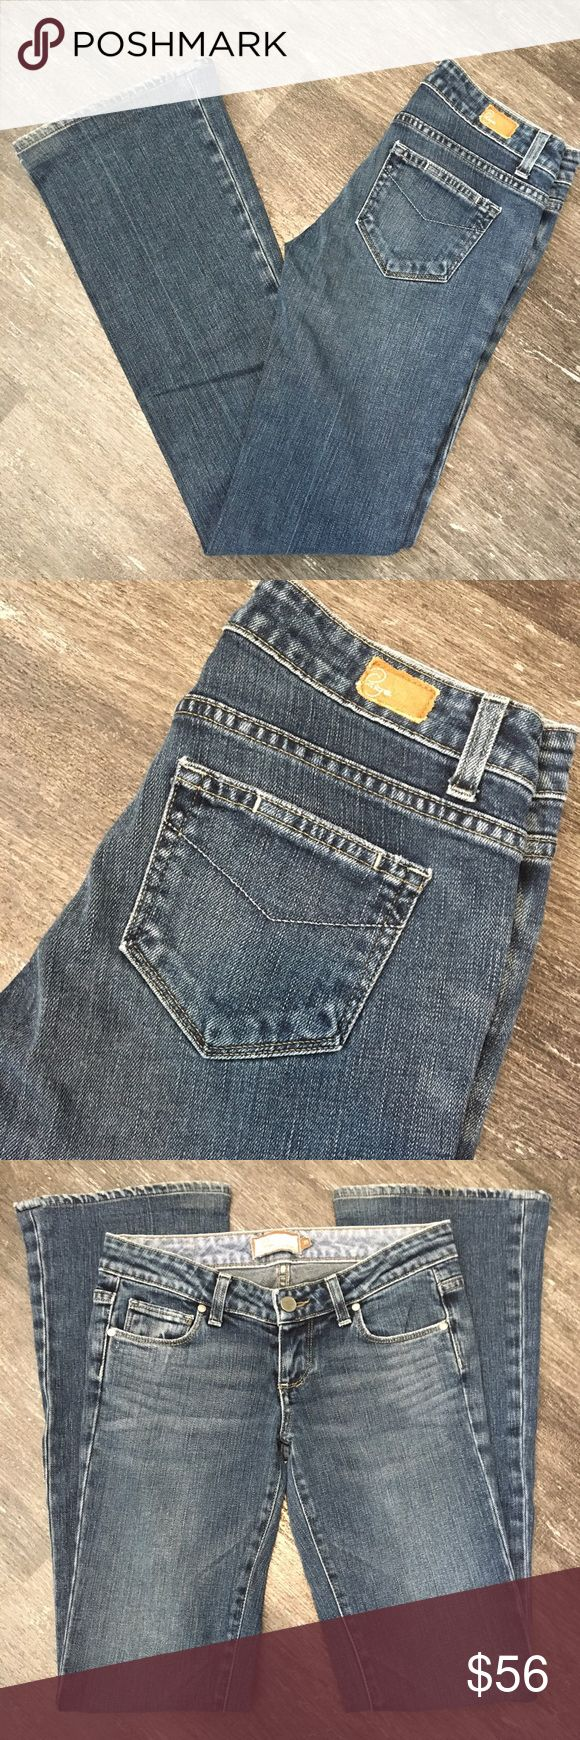 "🎀Paige Premium Denim🎀 Blue boot cut ""Laurel Canyon"" jeans by Paige Premium Denim. Size 25.   Closure: Single Button and Zipper  Material: 98% Cotton 2% Lycra   Measurements Waist: 28"" lying flat, stretches to 30""  Length: 39.5""  Inseam: 32""  Rise: 6.75""  Thigh width circumference: 18""  Leg opening circumference: 18"" Paige Jeans Jeans Boot Cut"